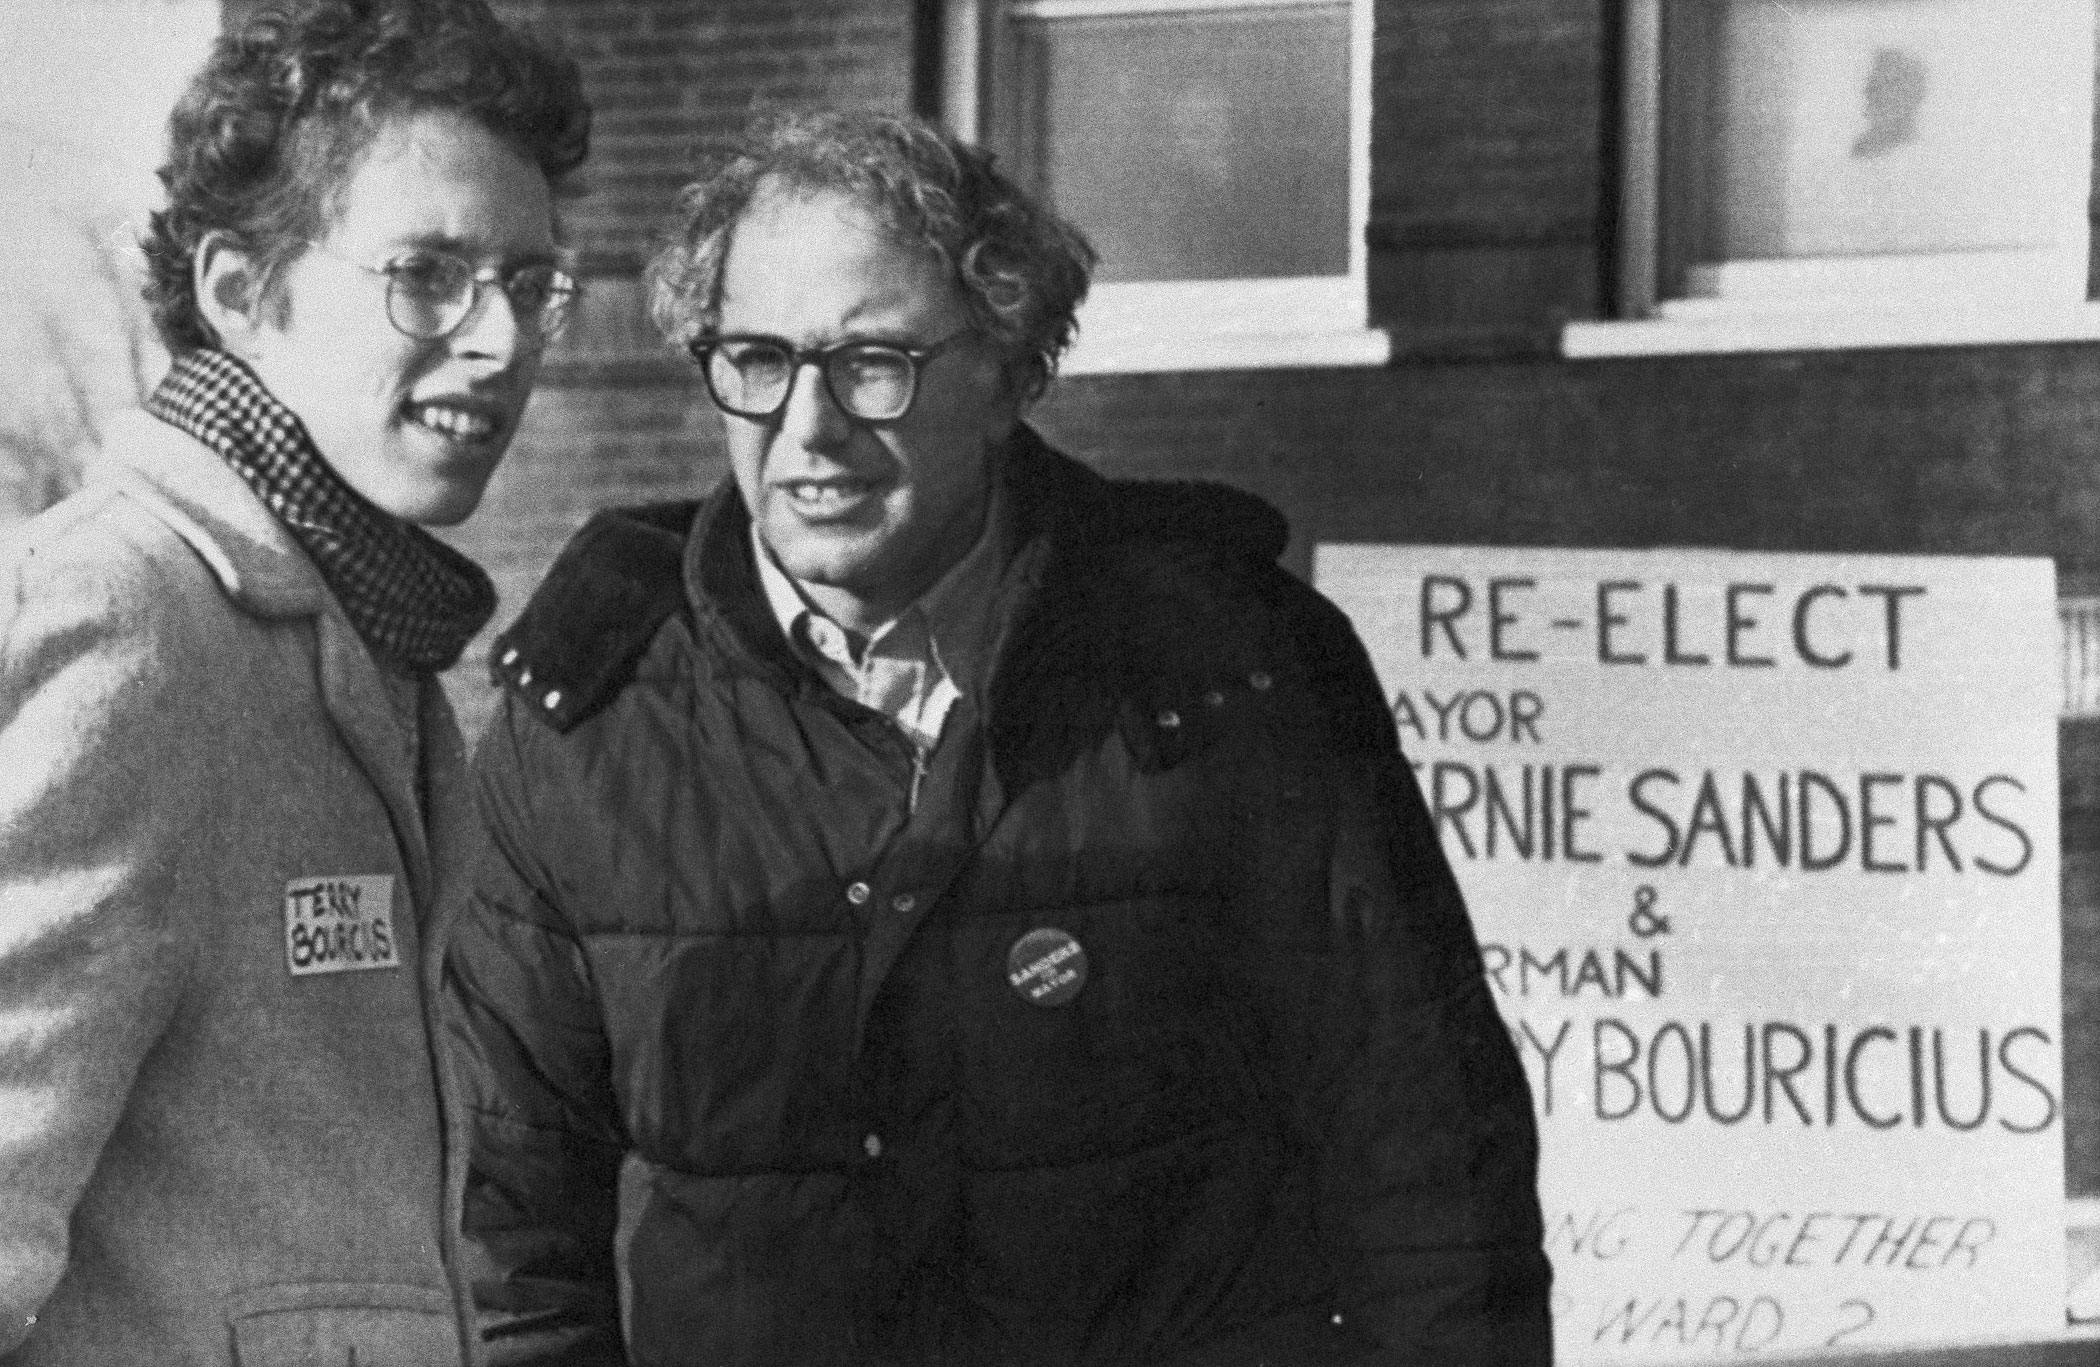 Bernie Sanders, right, greeted voters at a Burlington polling place on March 1, 1983 in Burlington, Vt.